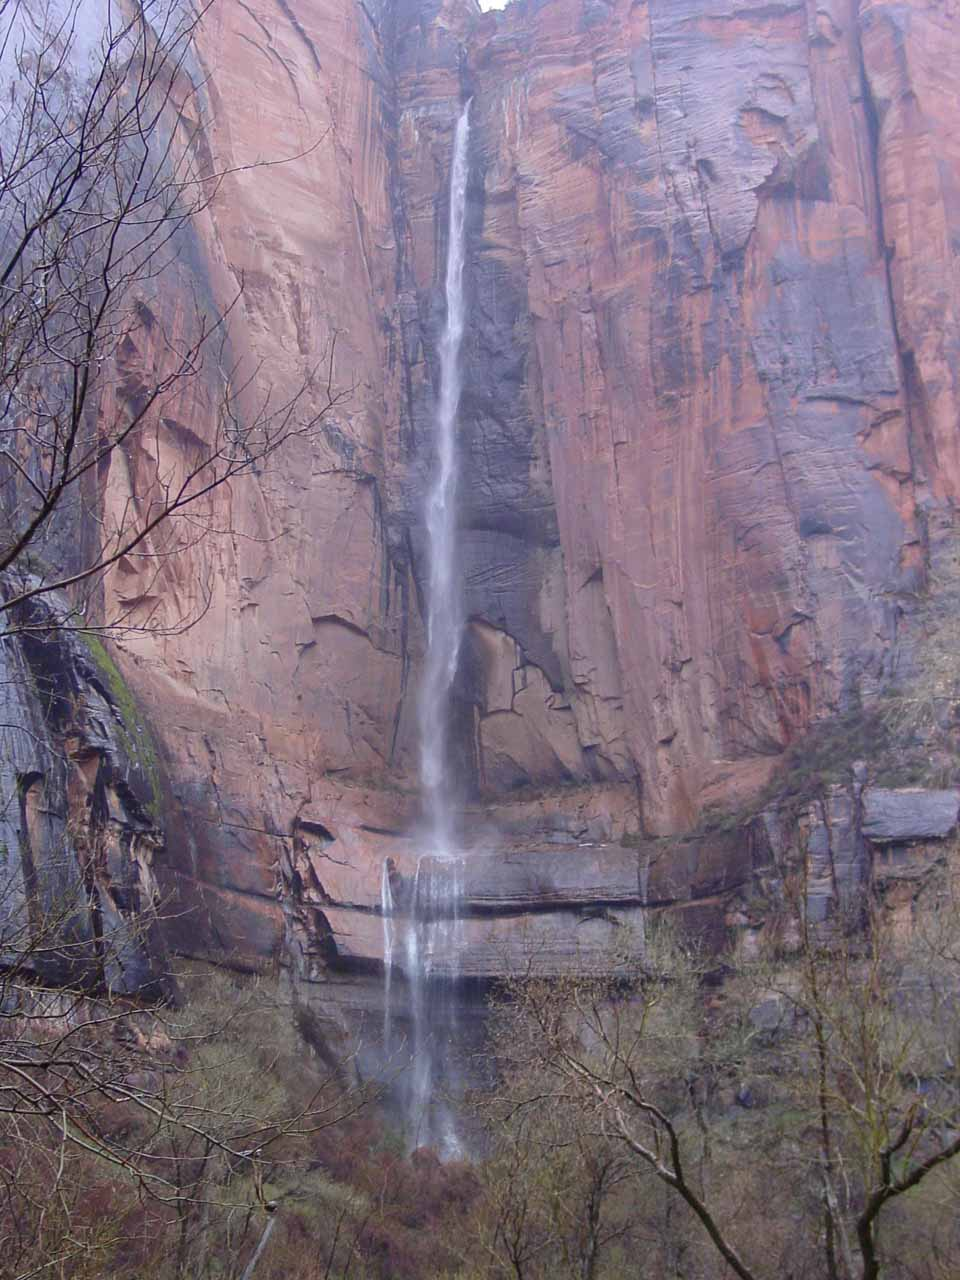 Direct view of the waterfall at Temple of Sinawava